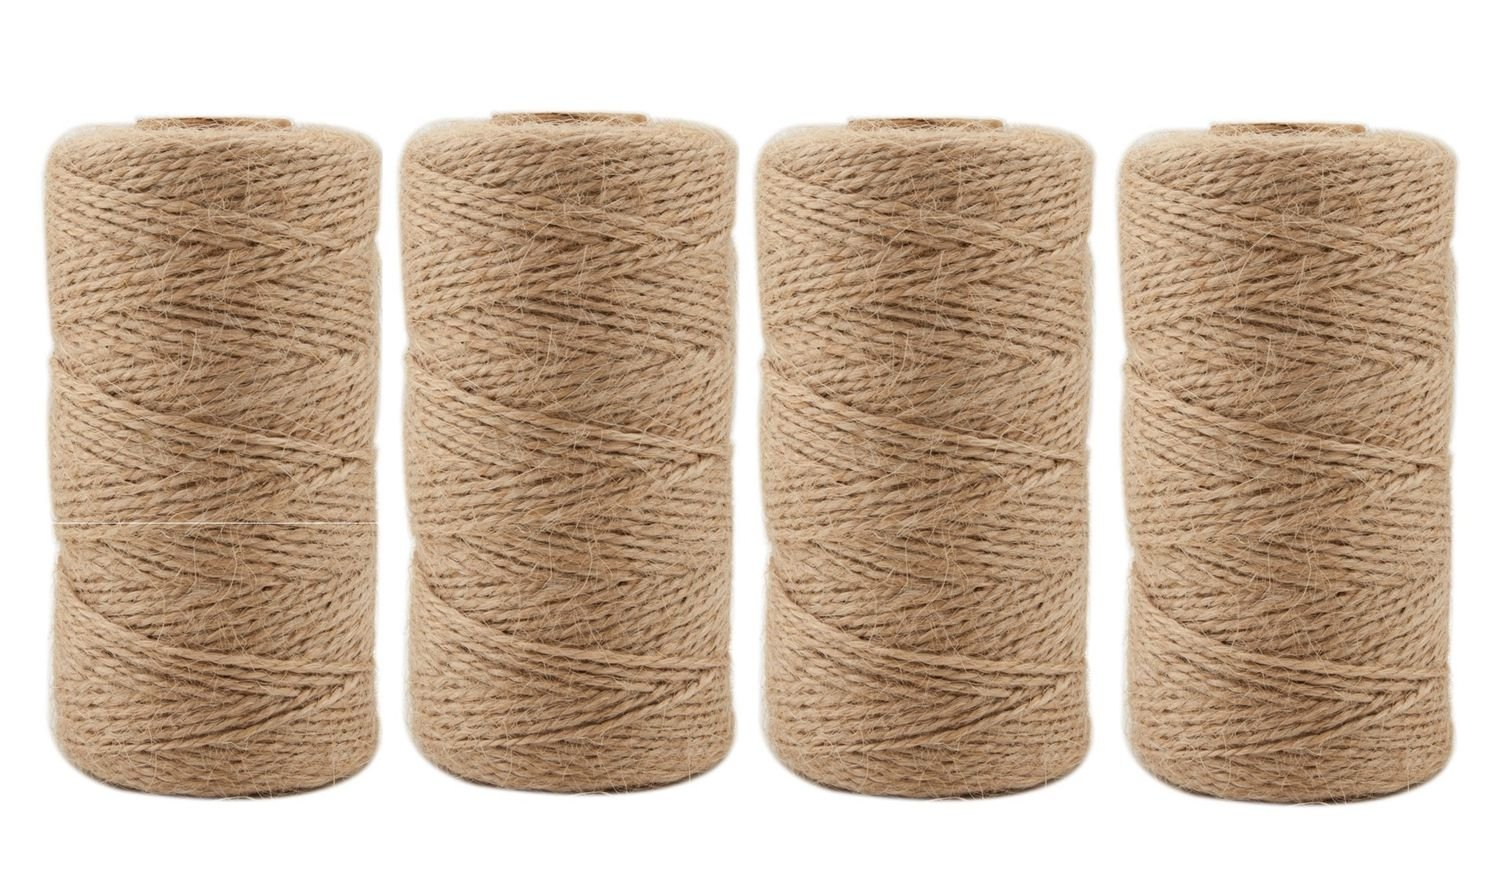 Jute Twine 1312 Feet 2mm 3Ply Natural Arts Crafts Jute Rope Durable Packing String for Gardening Applications(4pcs x 328feet)